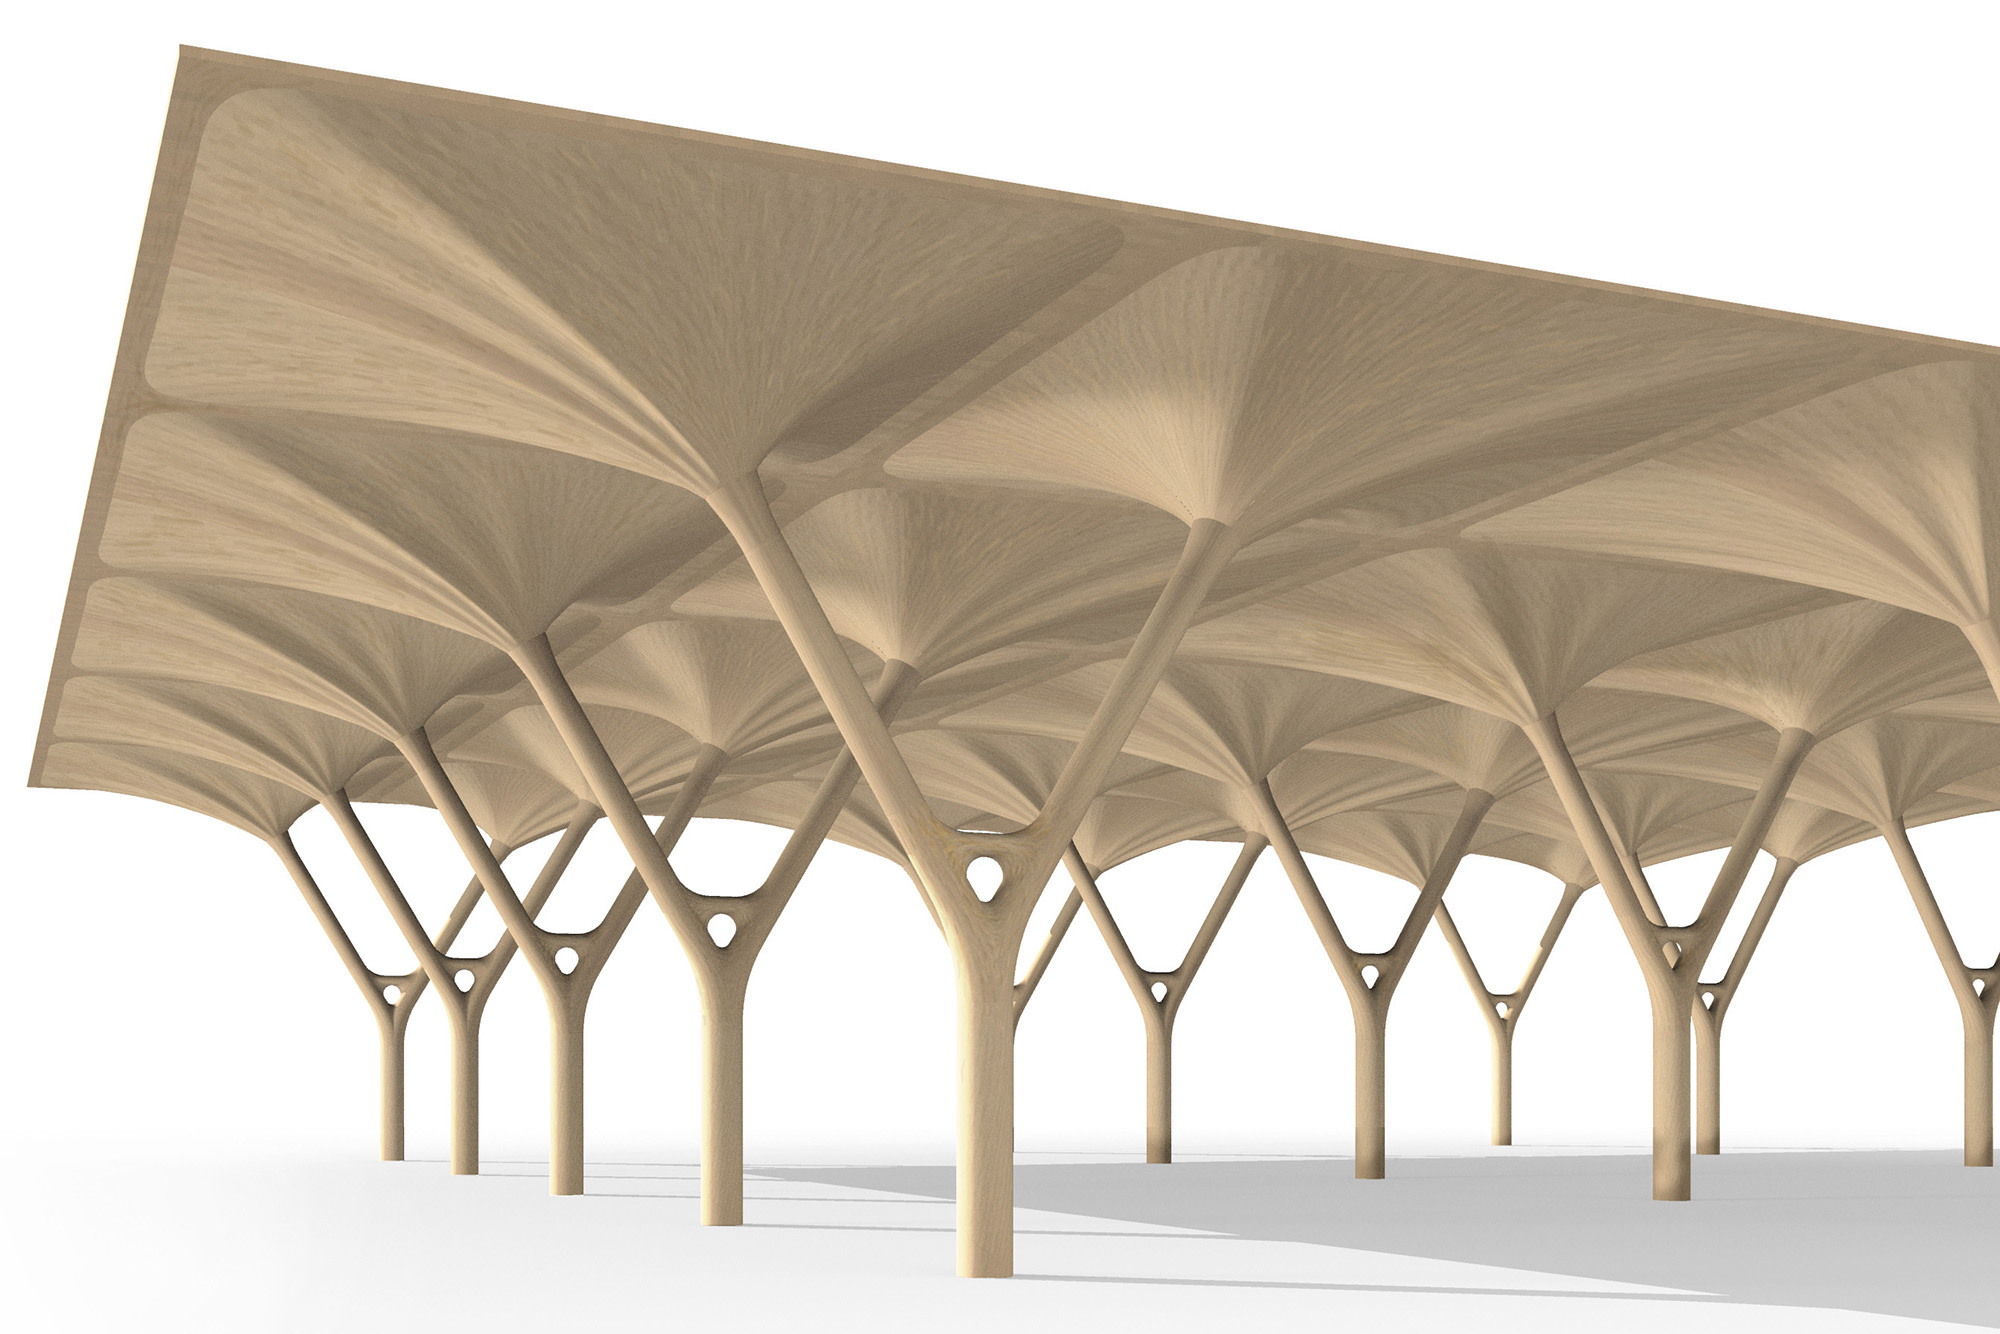 Structural and Light Pieces of Wood Based on Natural Intelligence of Trees